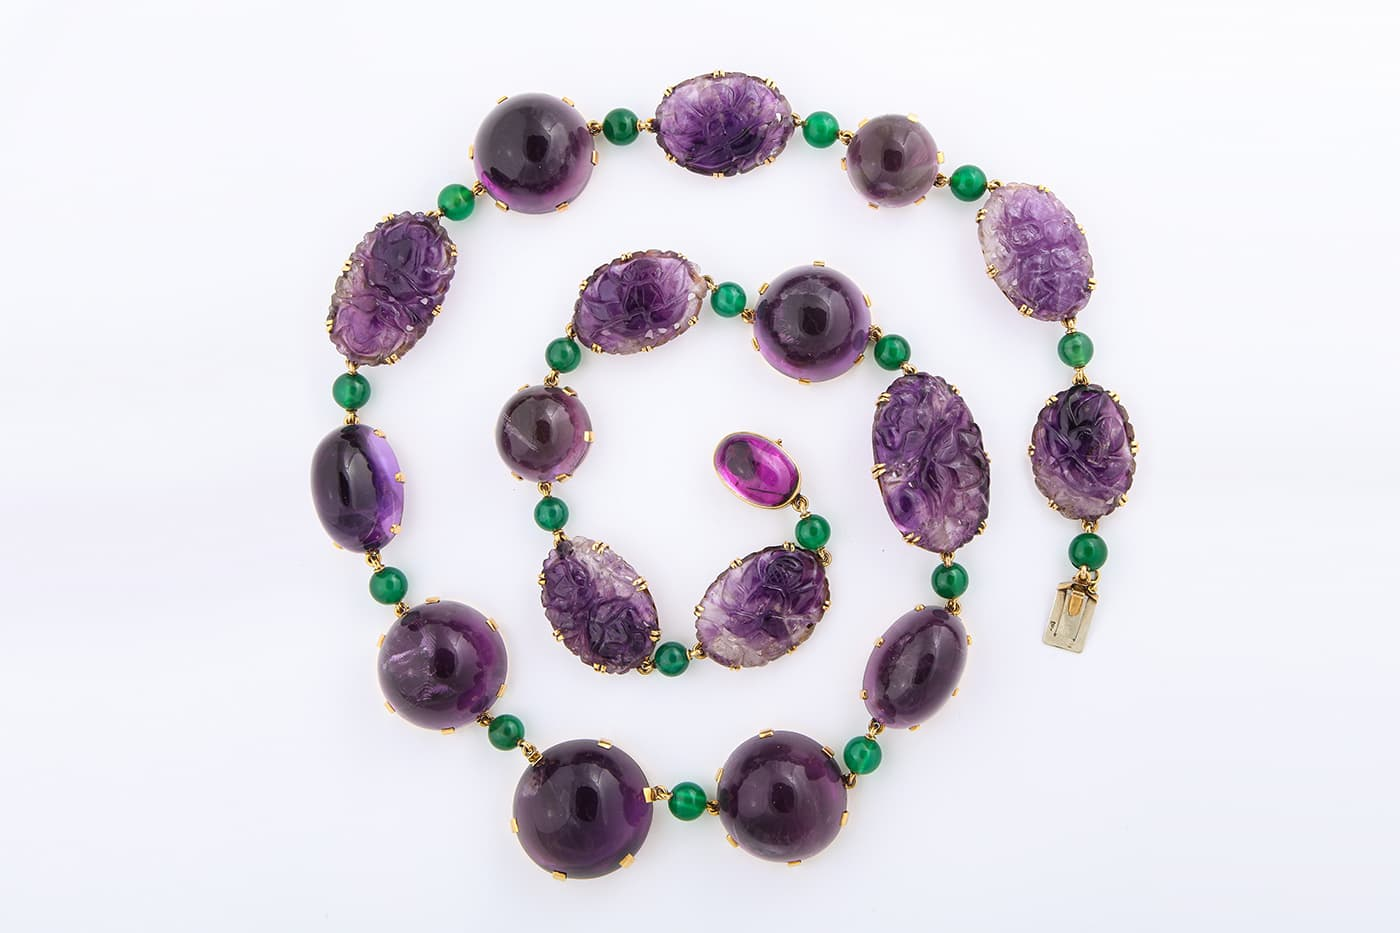 René Boivin 1950s cabochon and carved amethyst necklace and bracelet, interspersed with chrysoprase beads, in 18 carat gold. Sold by A La Vieille Russie